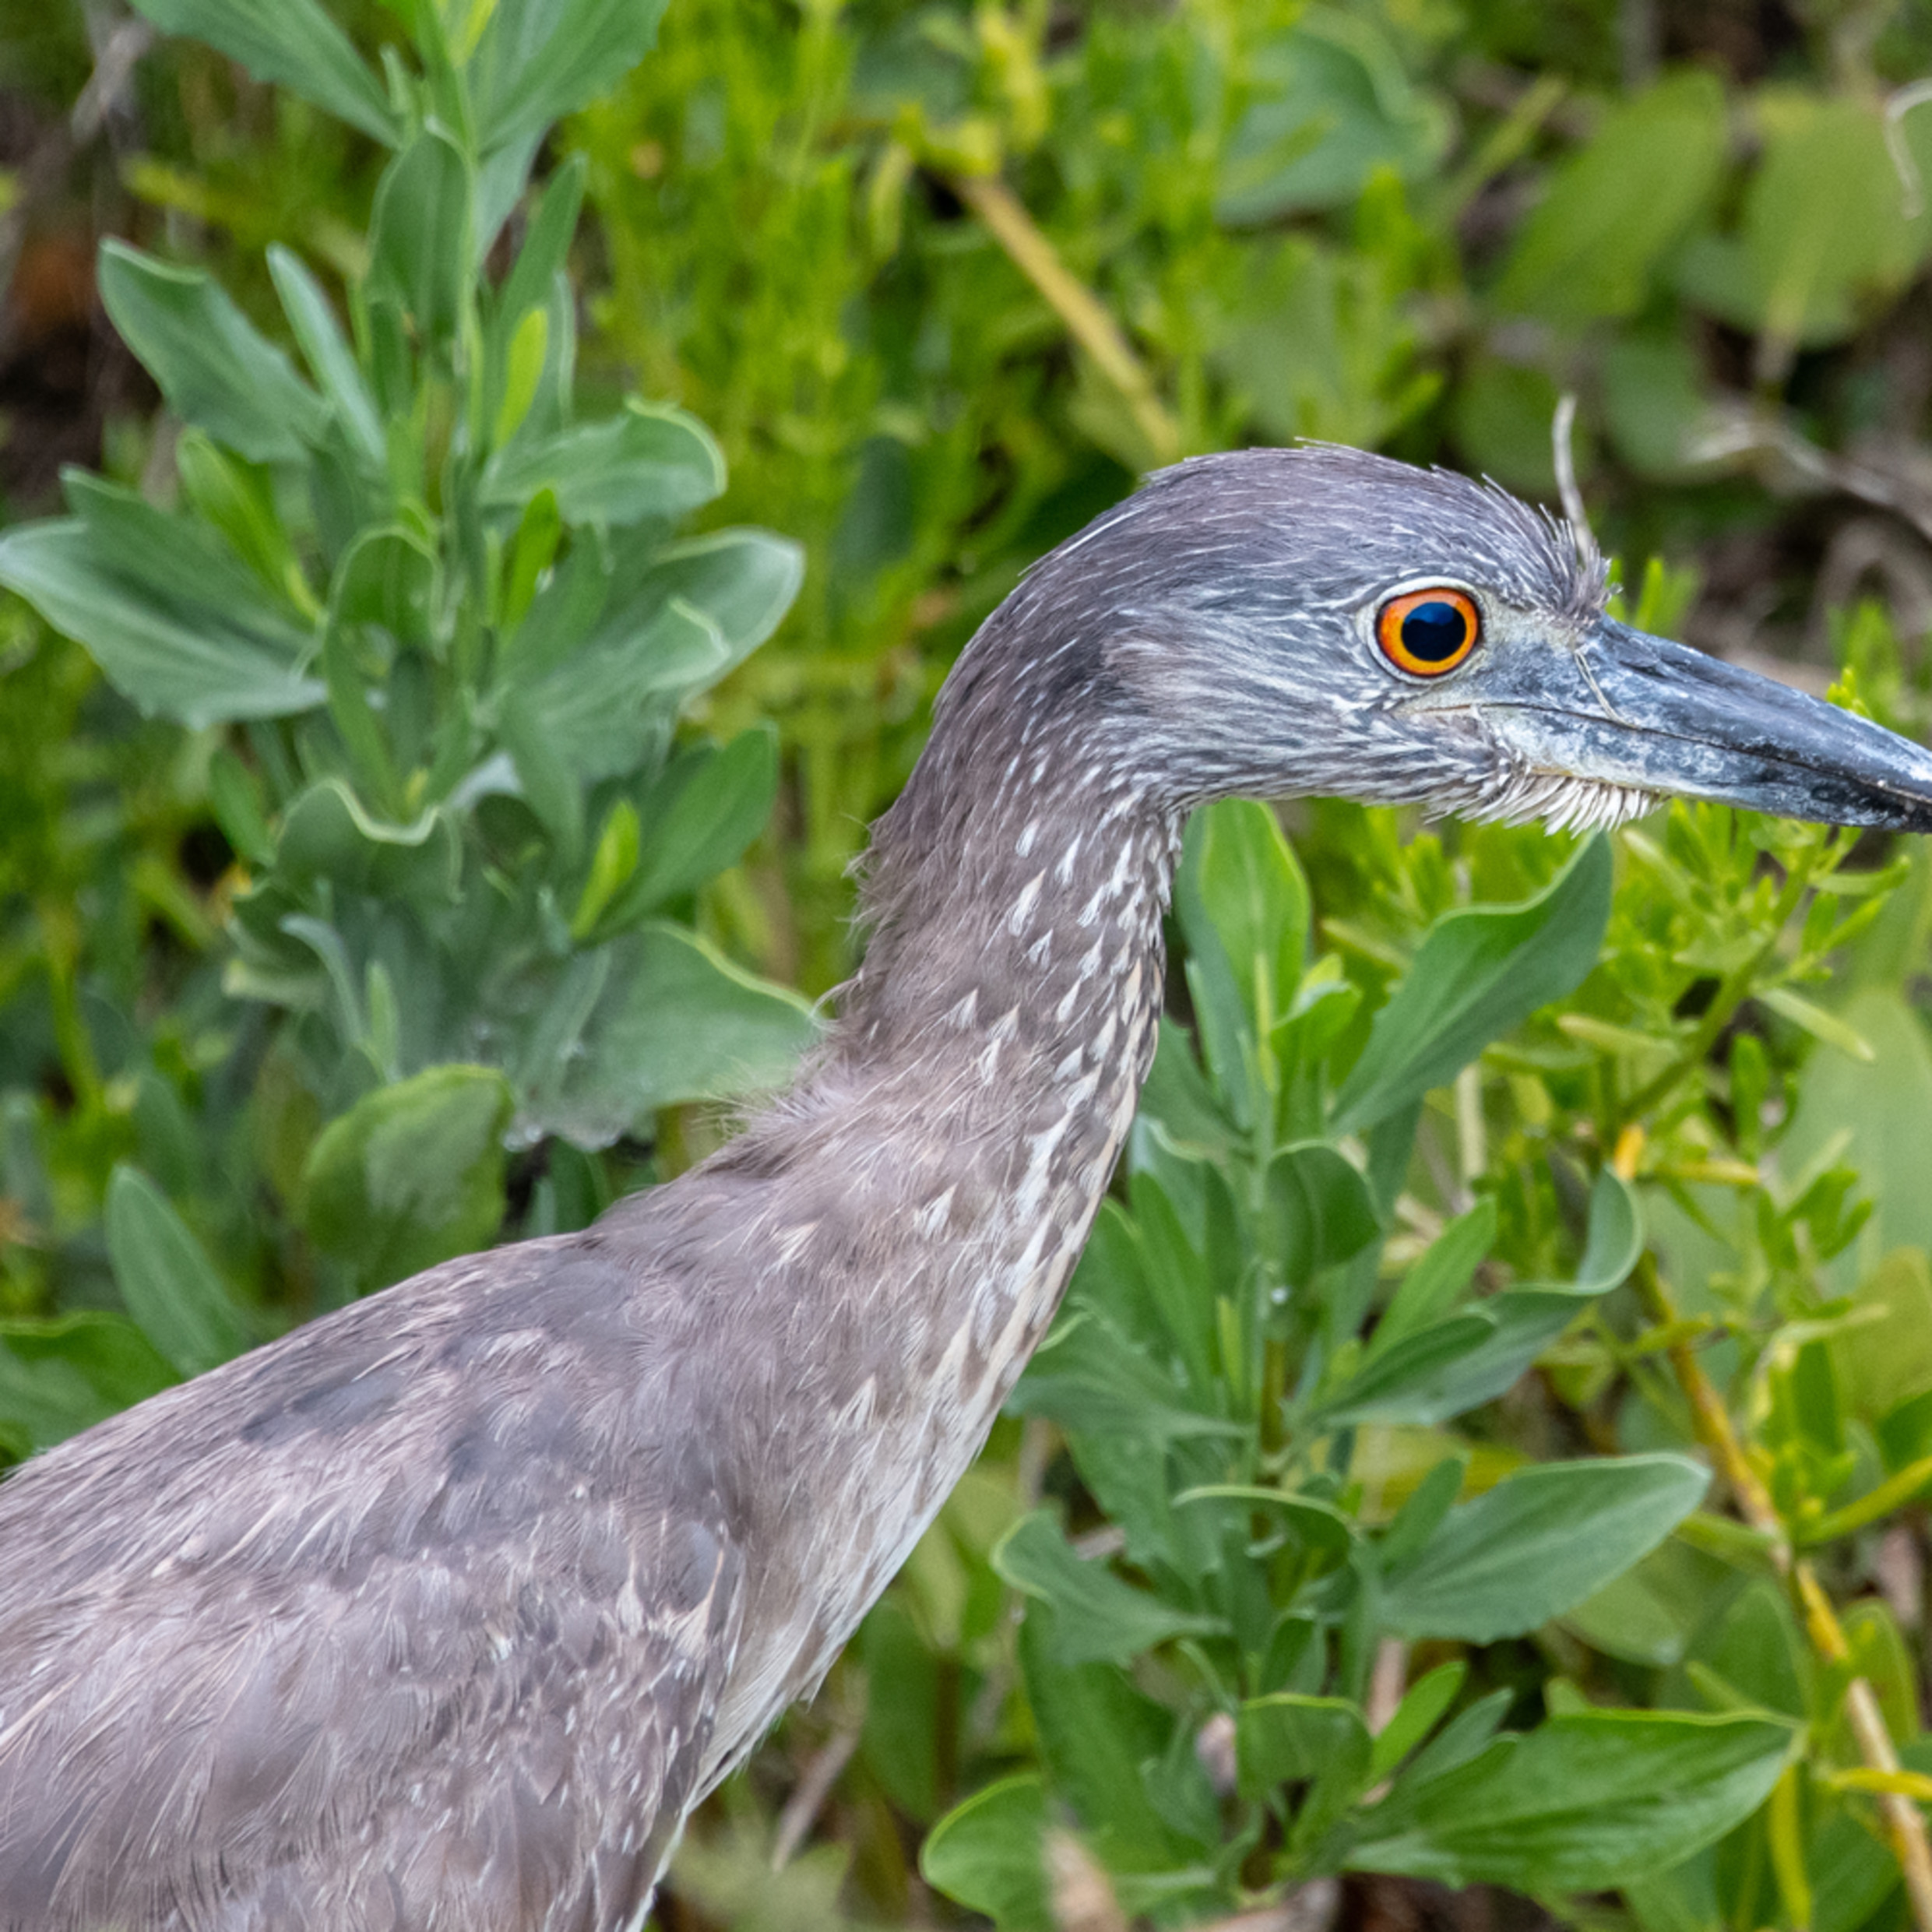 Heron portraits jackie one juvenile yellow crowned night heron asfprint lk08nz